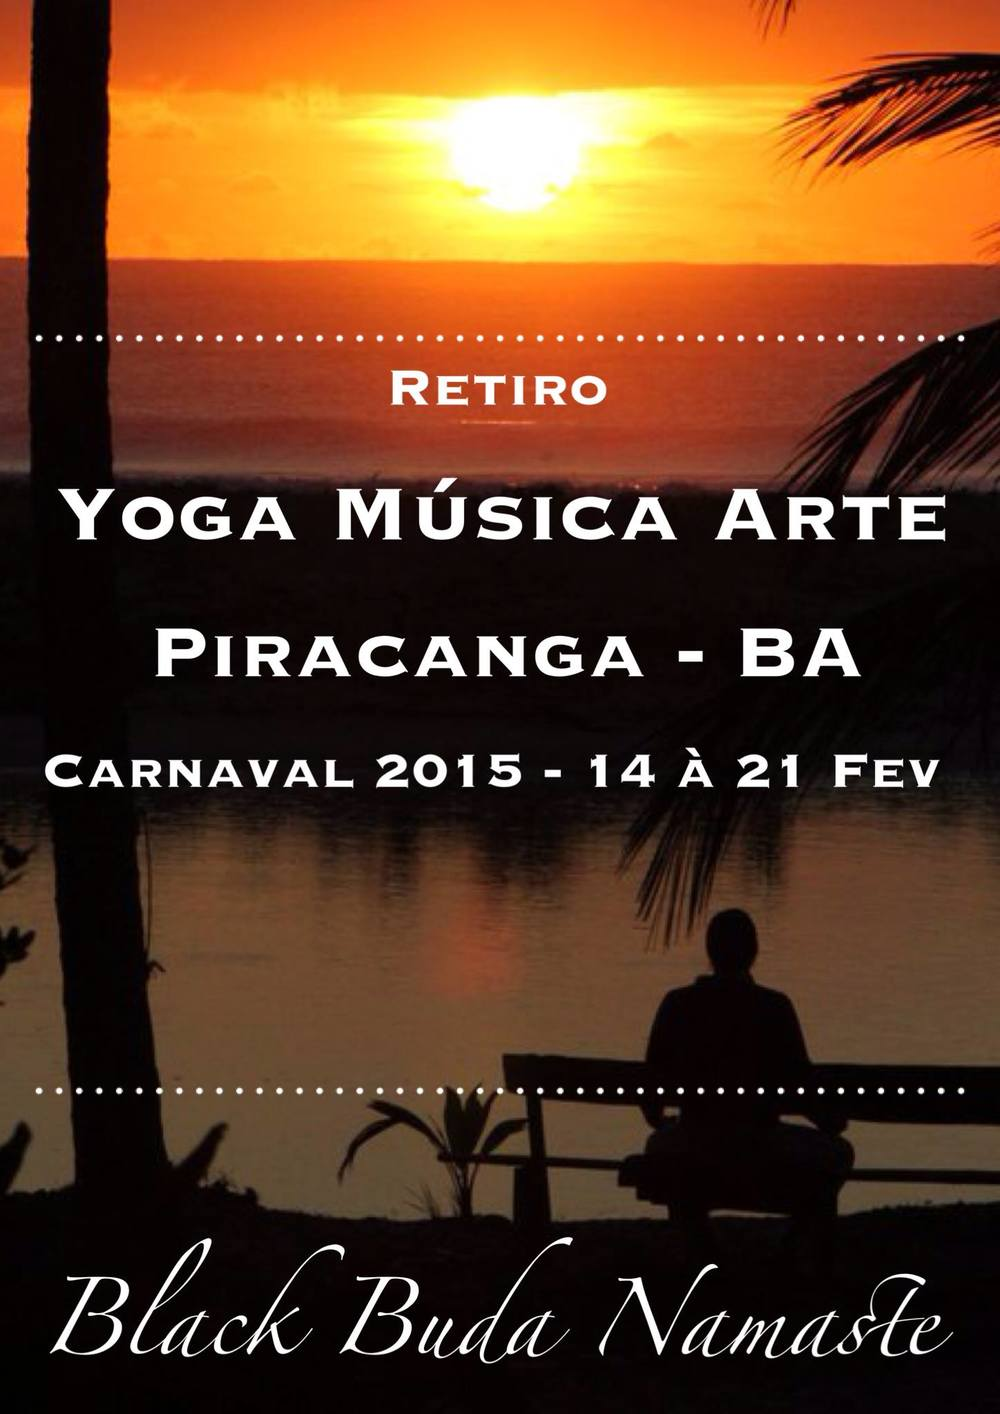 21/02/15 – Eco Village Piracanga – Itacaré, BA